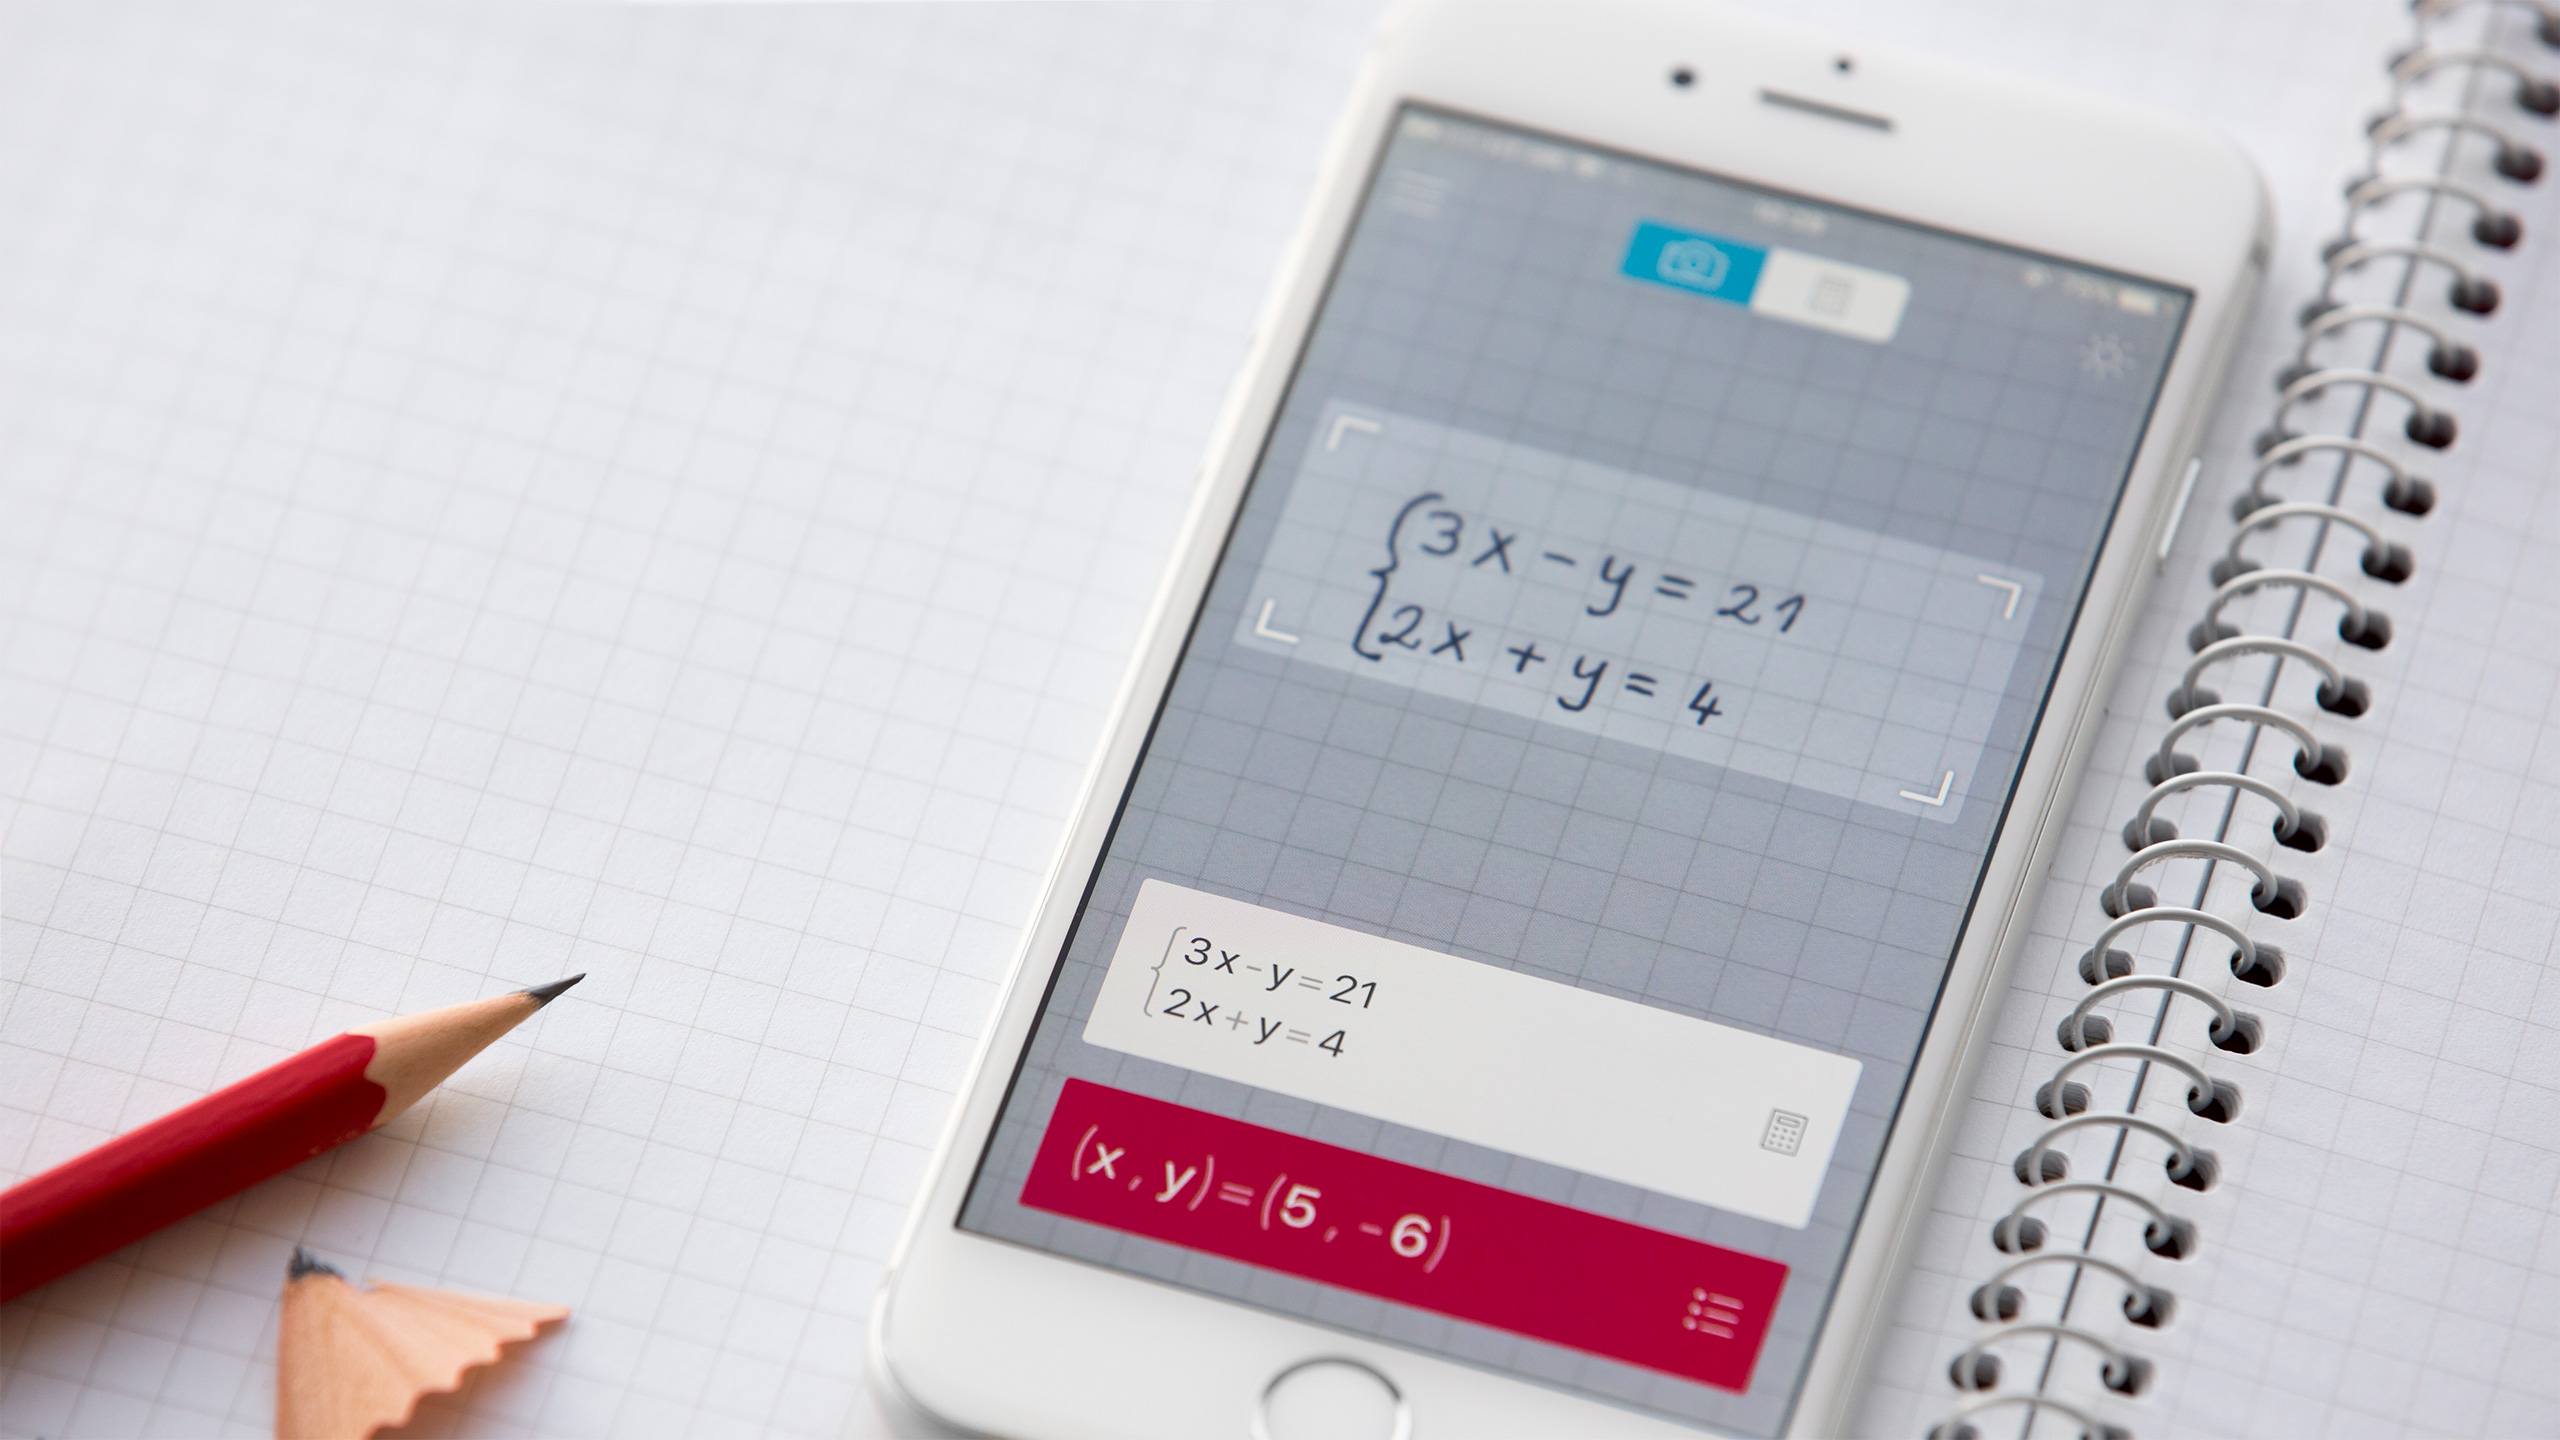 There's an app that can solve math problems for you and we WISH it had existed sooner